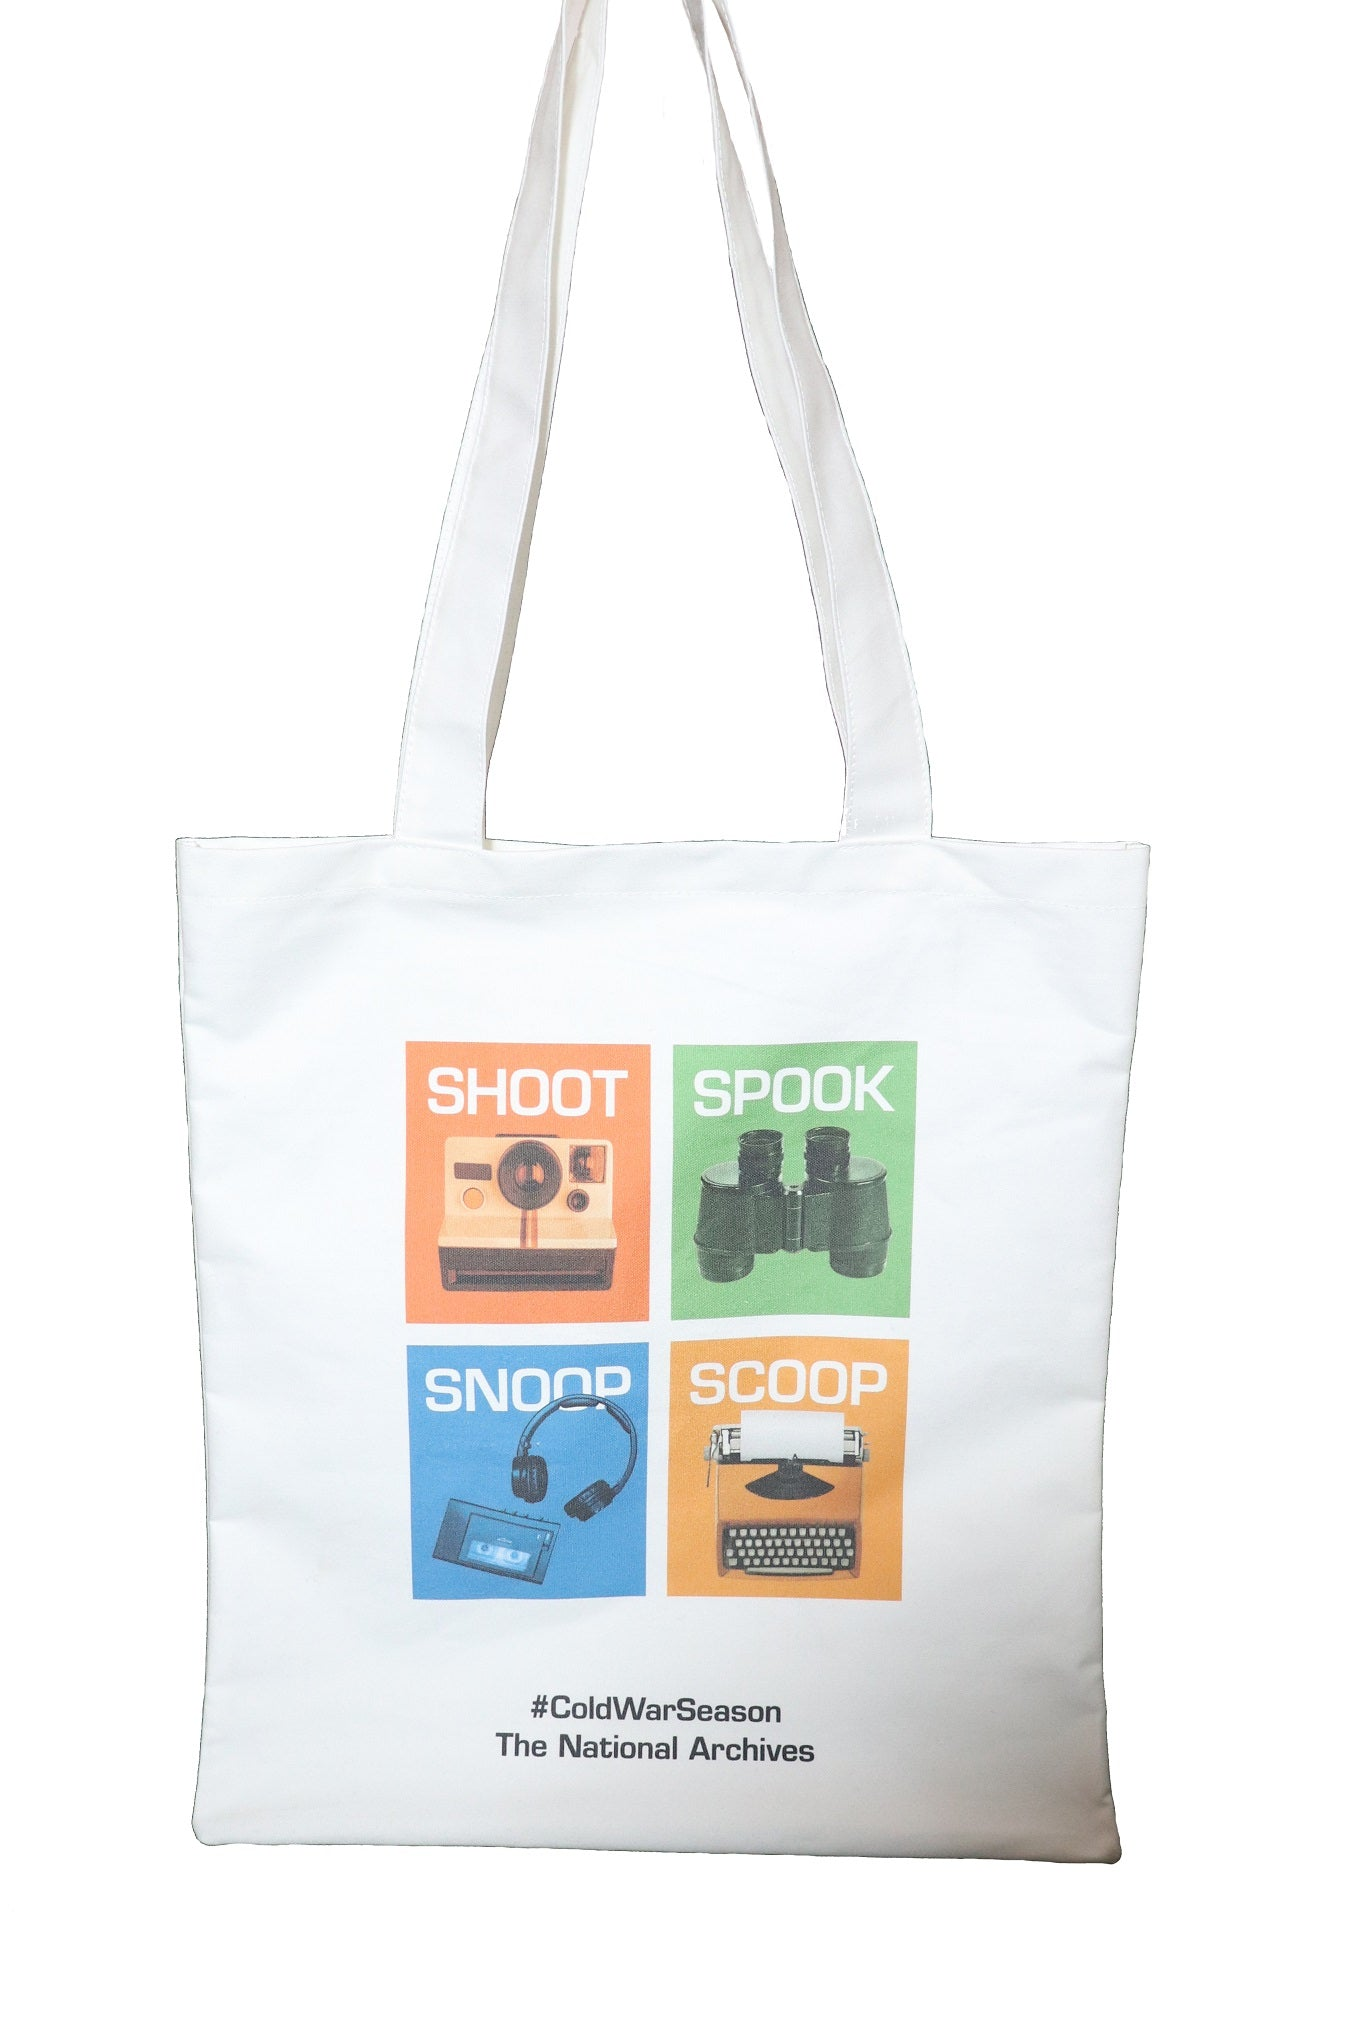 Snoop Shoot Spook Scoop Cotton Tote Bag